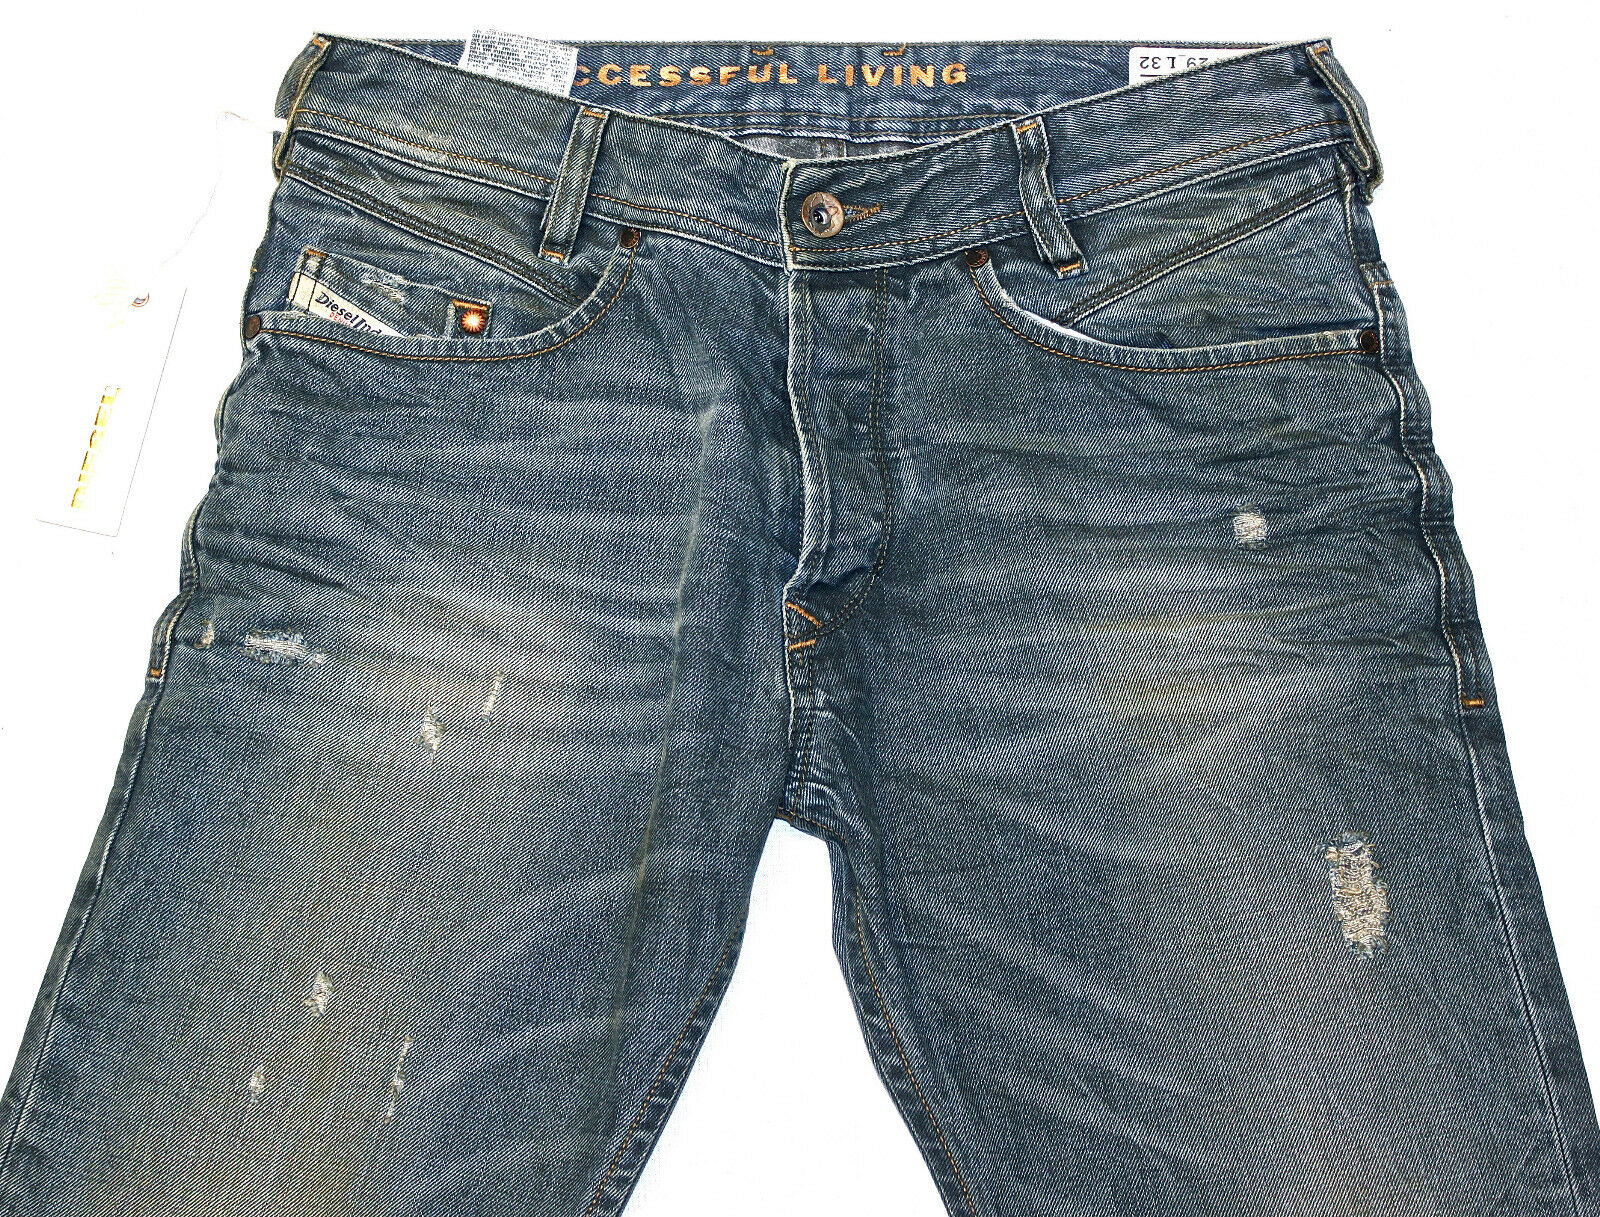 BRAND NEW DIESEL POIAK 885Y JEANS 29X32 0885Y REGULAR SLIM FIT TAPERED LEG